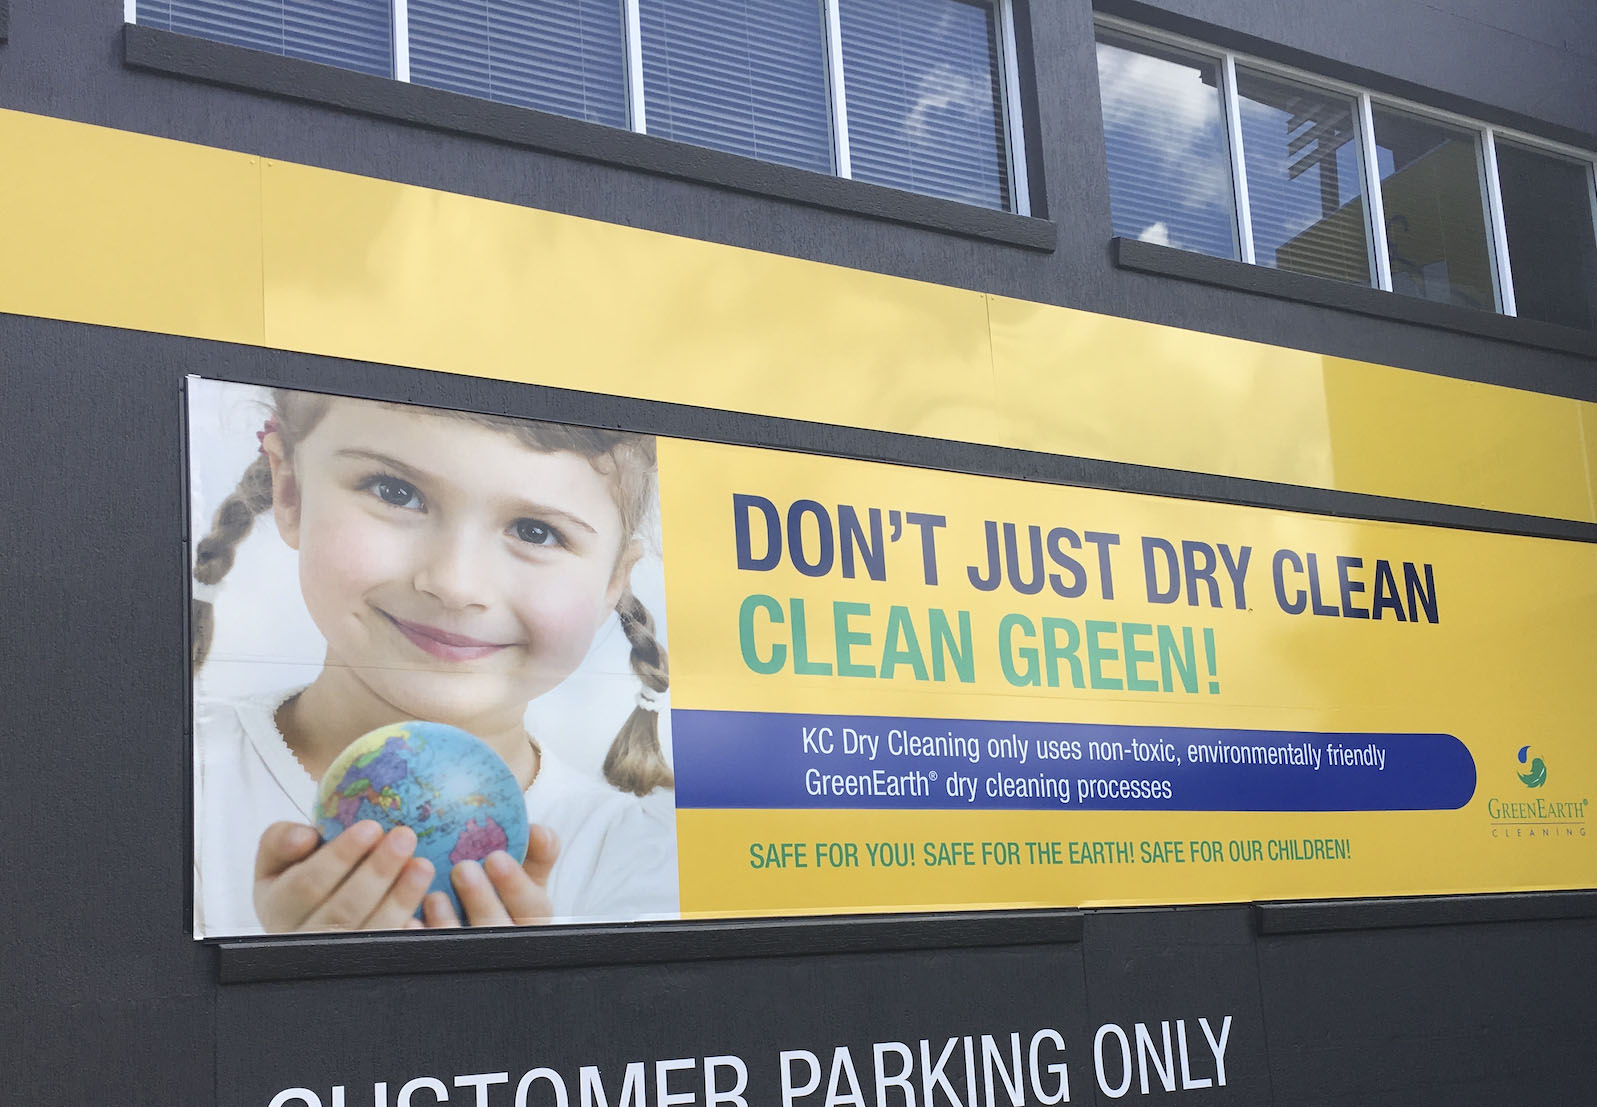 dry cleaning_green_2.jpg